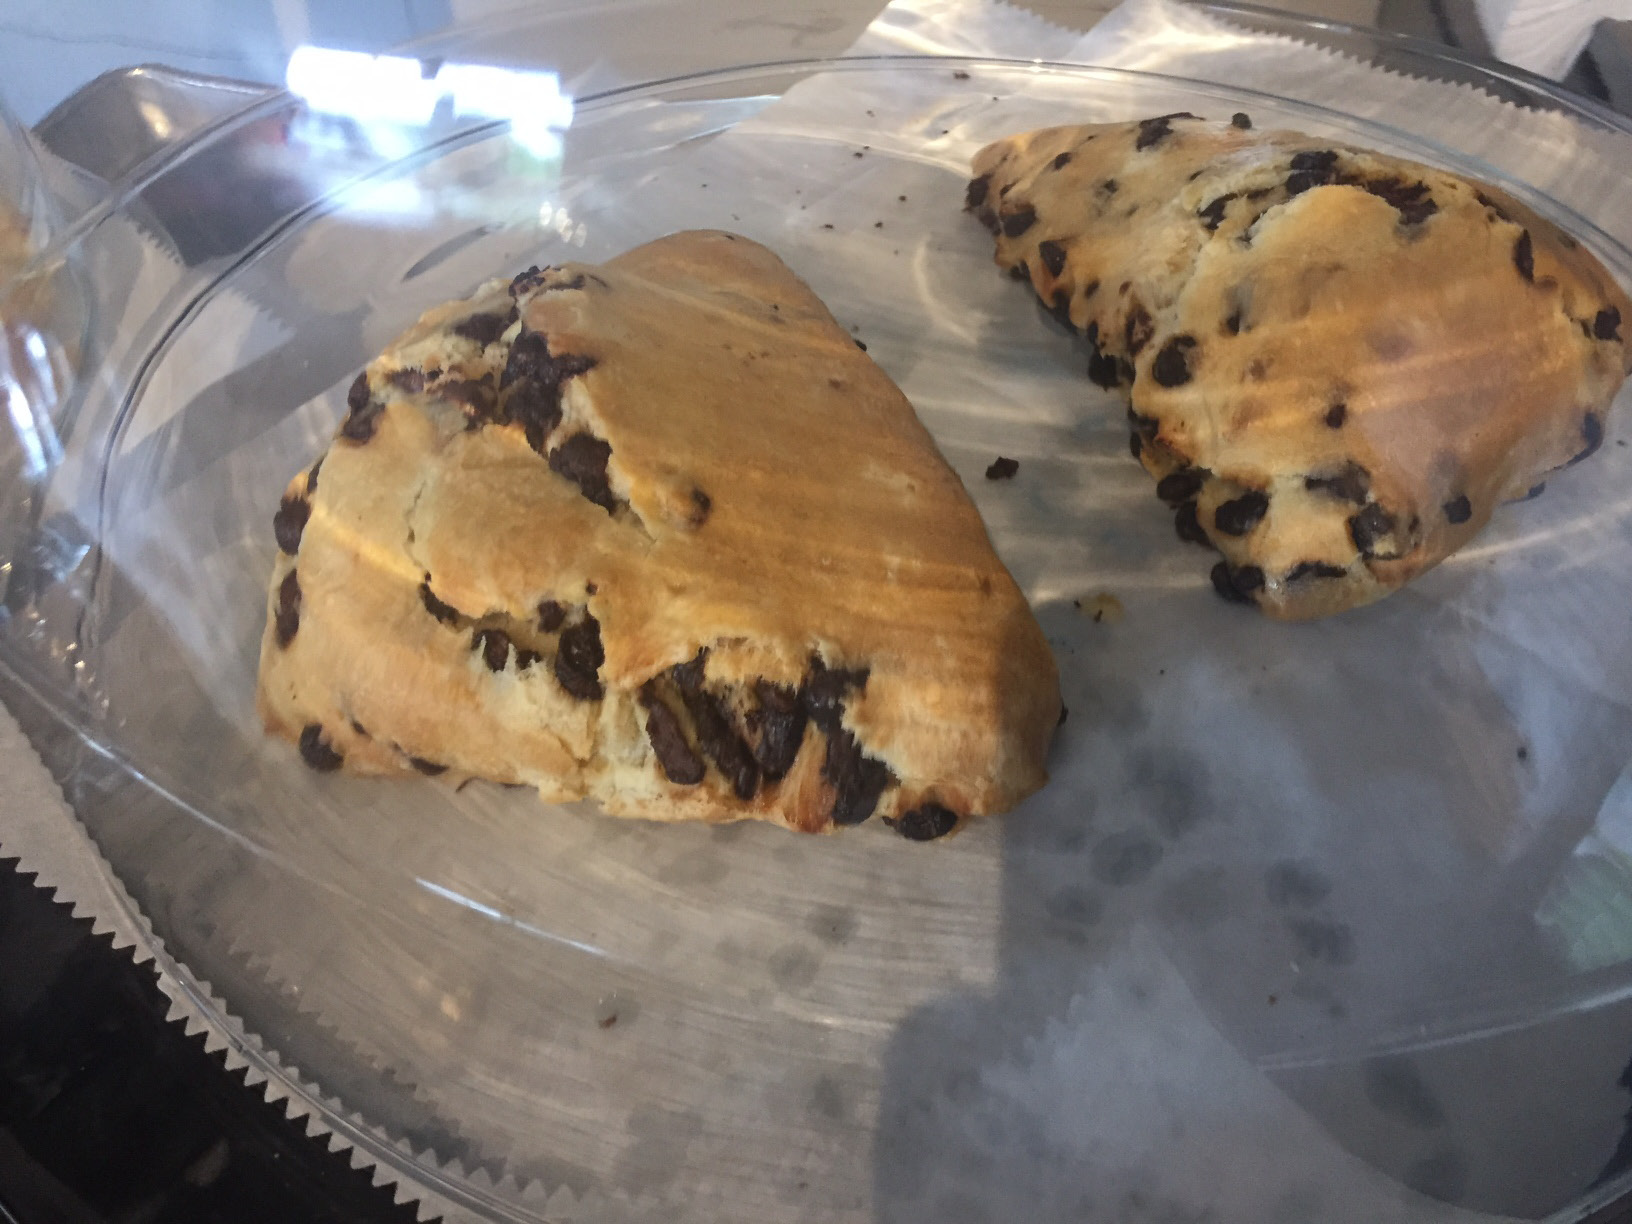 Chocolate chip scones on the counter during the grand opening of Box Bistro on Farmington Ave., Monday, July 17. |Ashley Kus, The Berlin Citizen